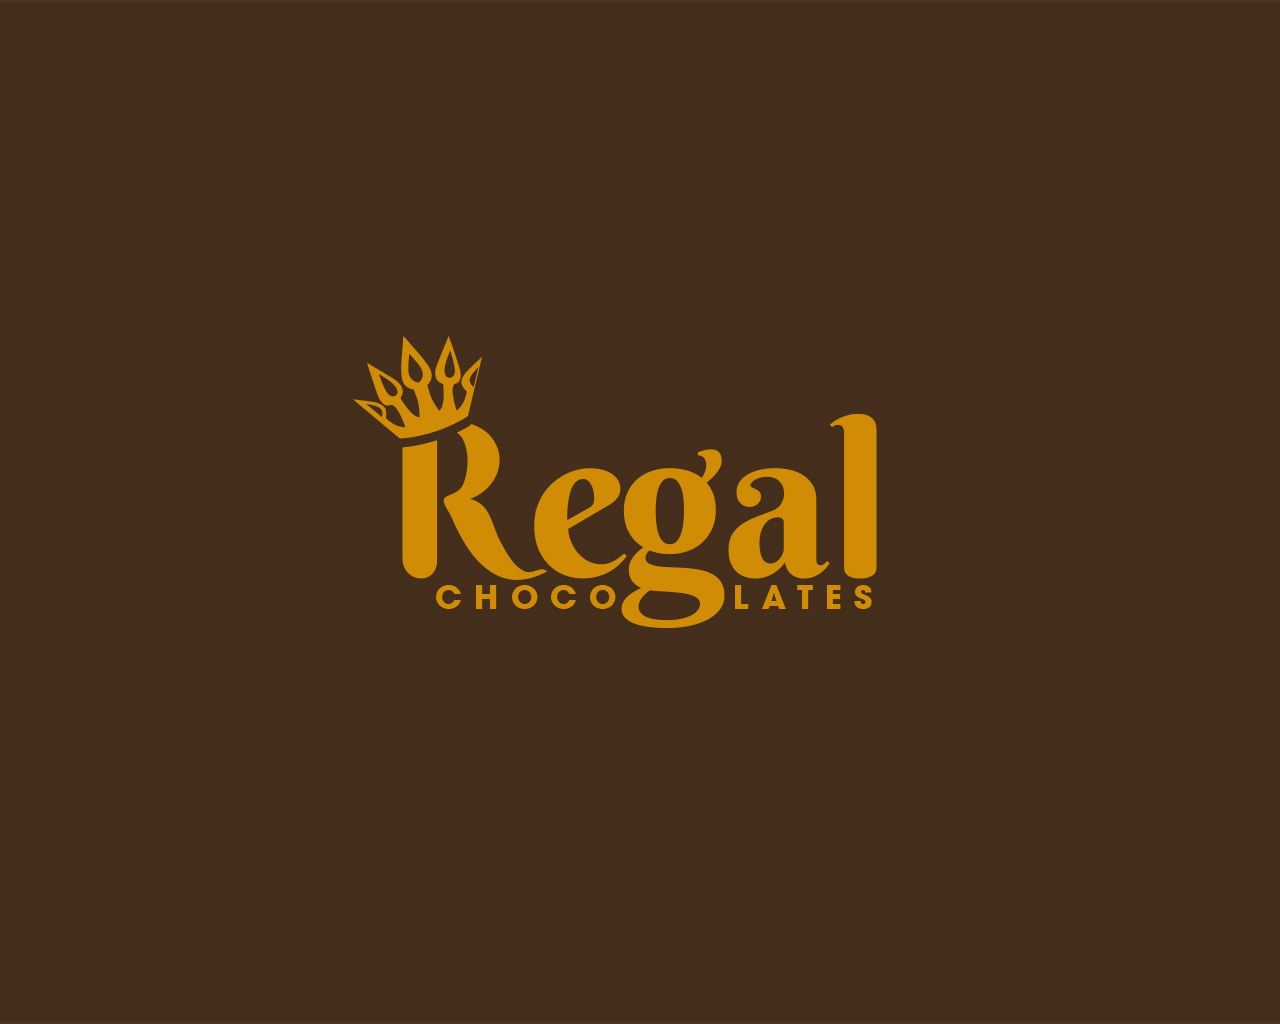 Regal Design Elegant, Playful, Business Logo Design For Regal Chocolate By Rzk Dezigns | Design #6193348